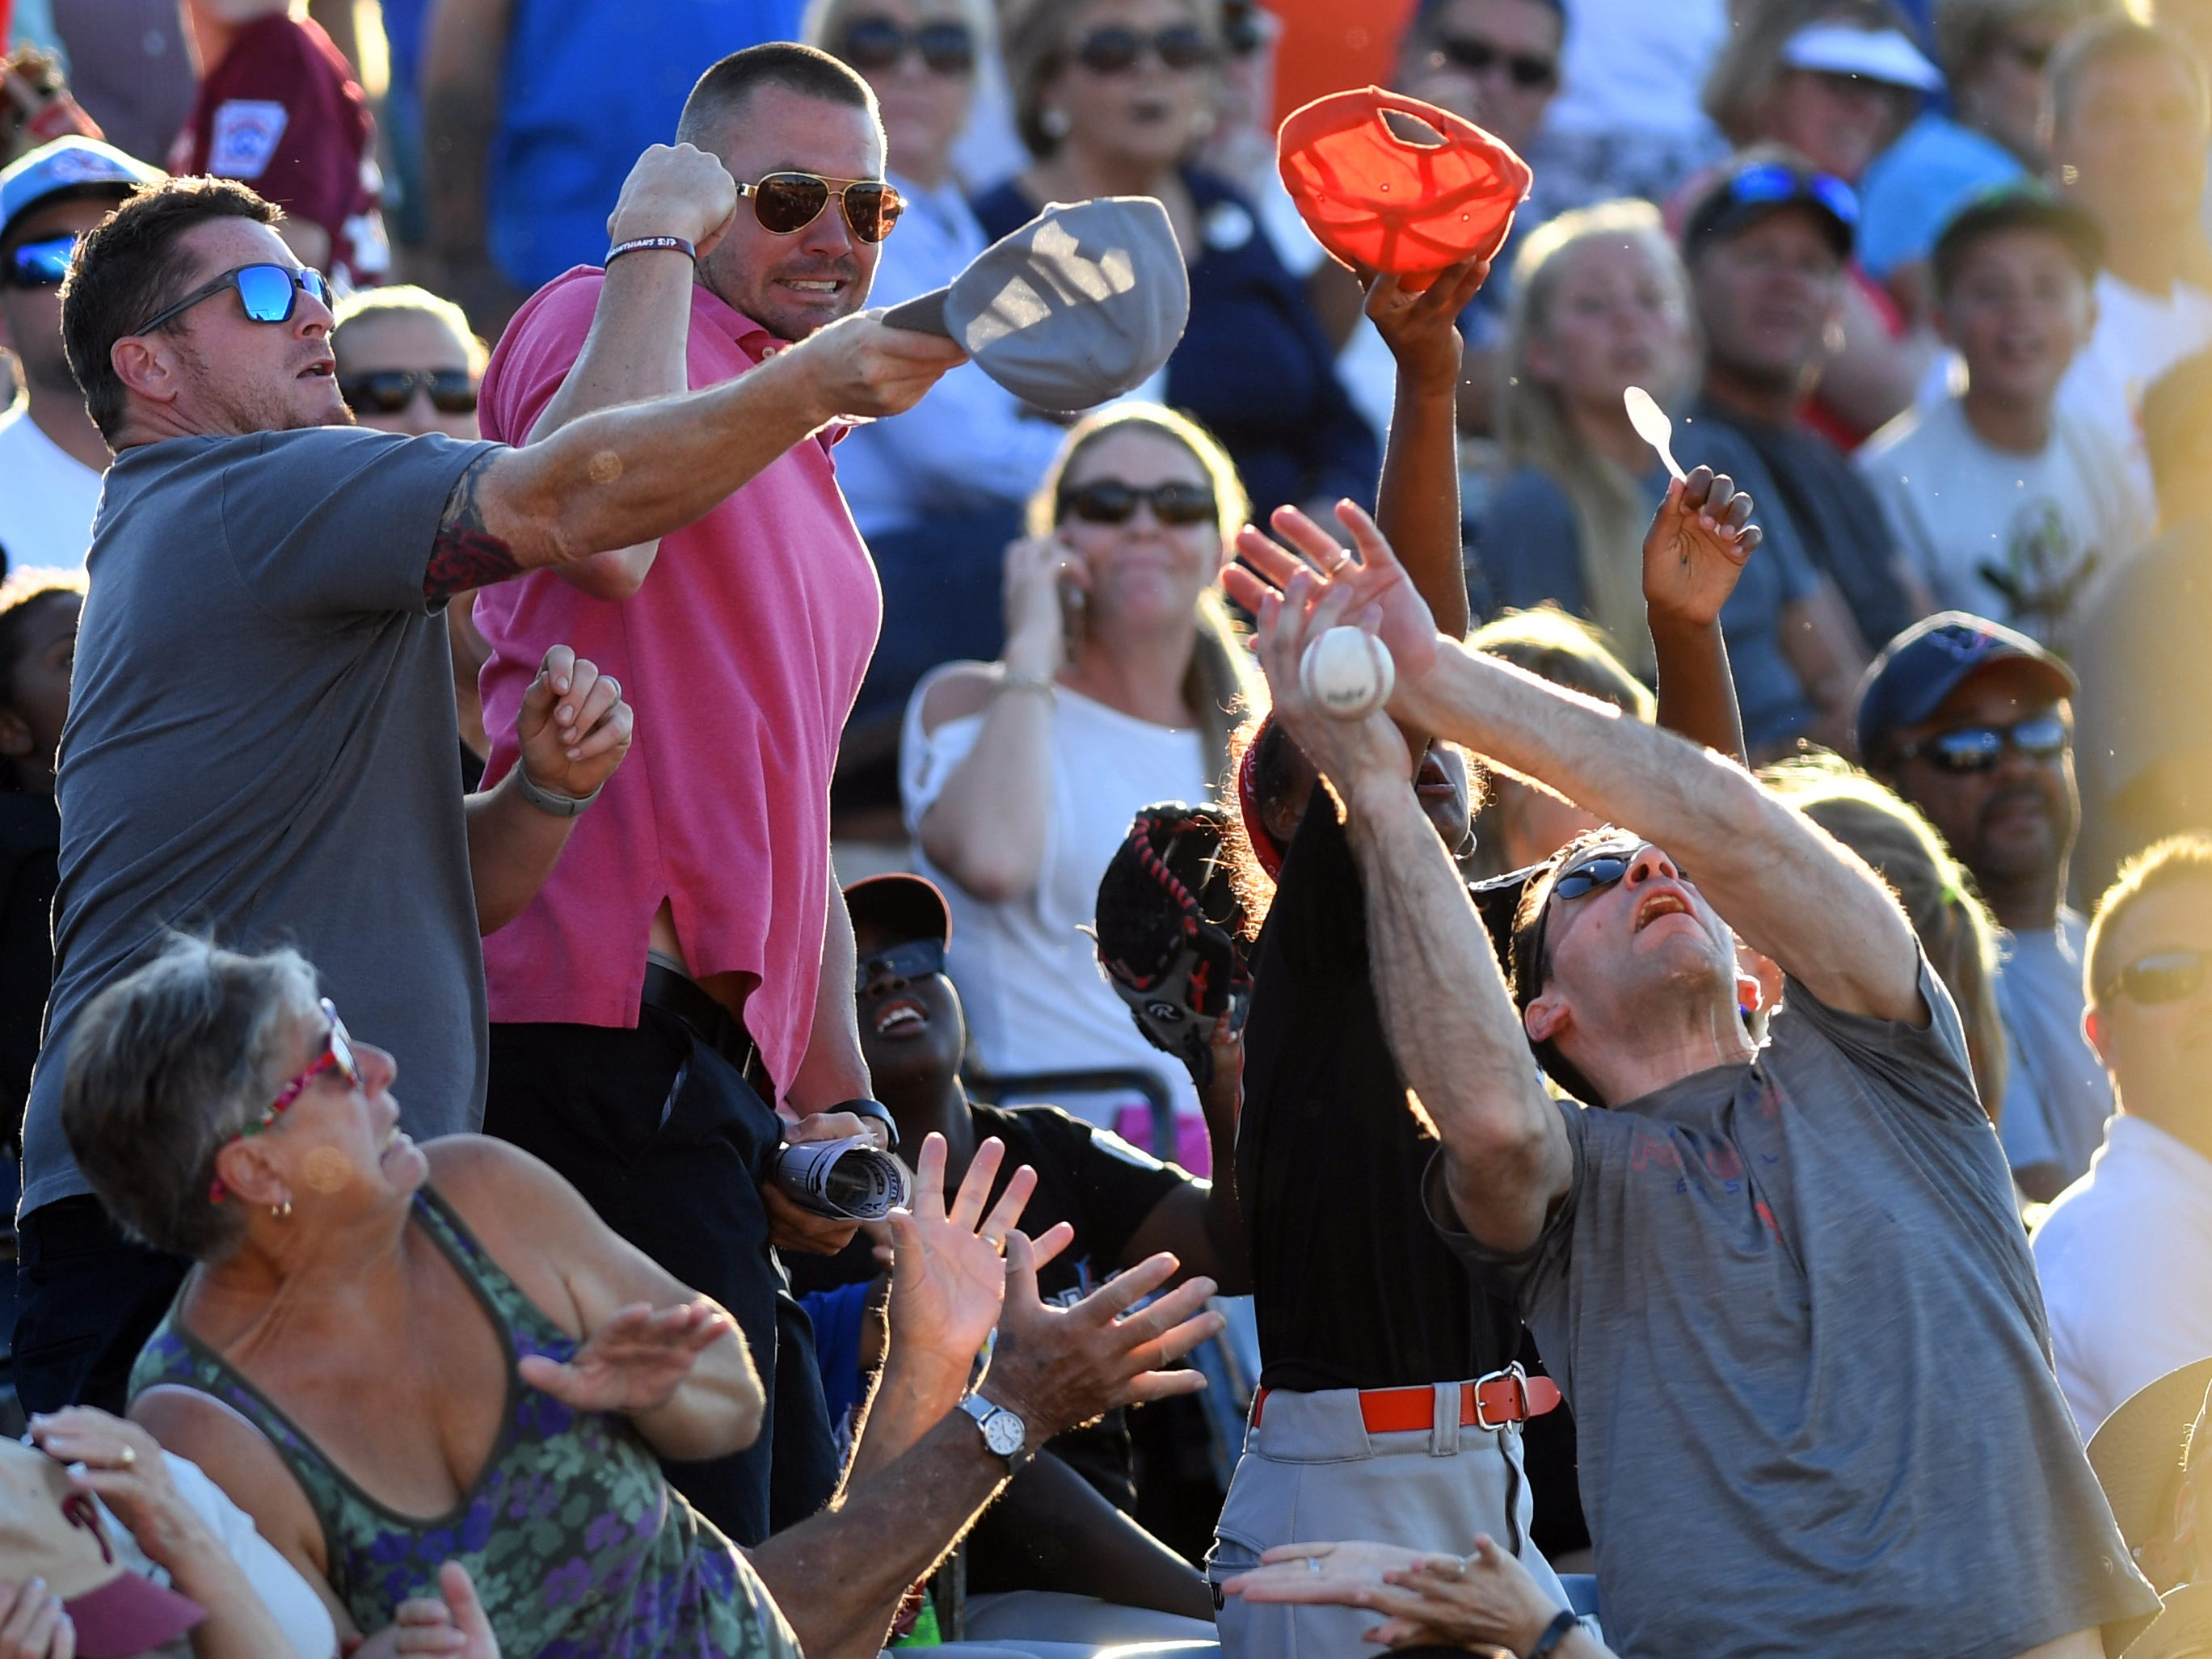 Spectators try their luck at catching a foul ball on Monday, April 15, 2019 during the 6th annual Jackie Robinson Celebration Game at Holman Field at the Jackie Robinson Training Complex in Vero Beach. Proceeds of the sold out game between the St. Lucie Mets and Fort Myers Miracle went to benefit the United Way of Indian River County.